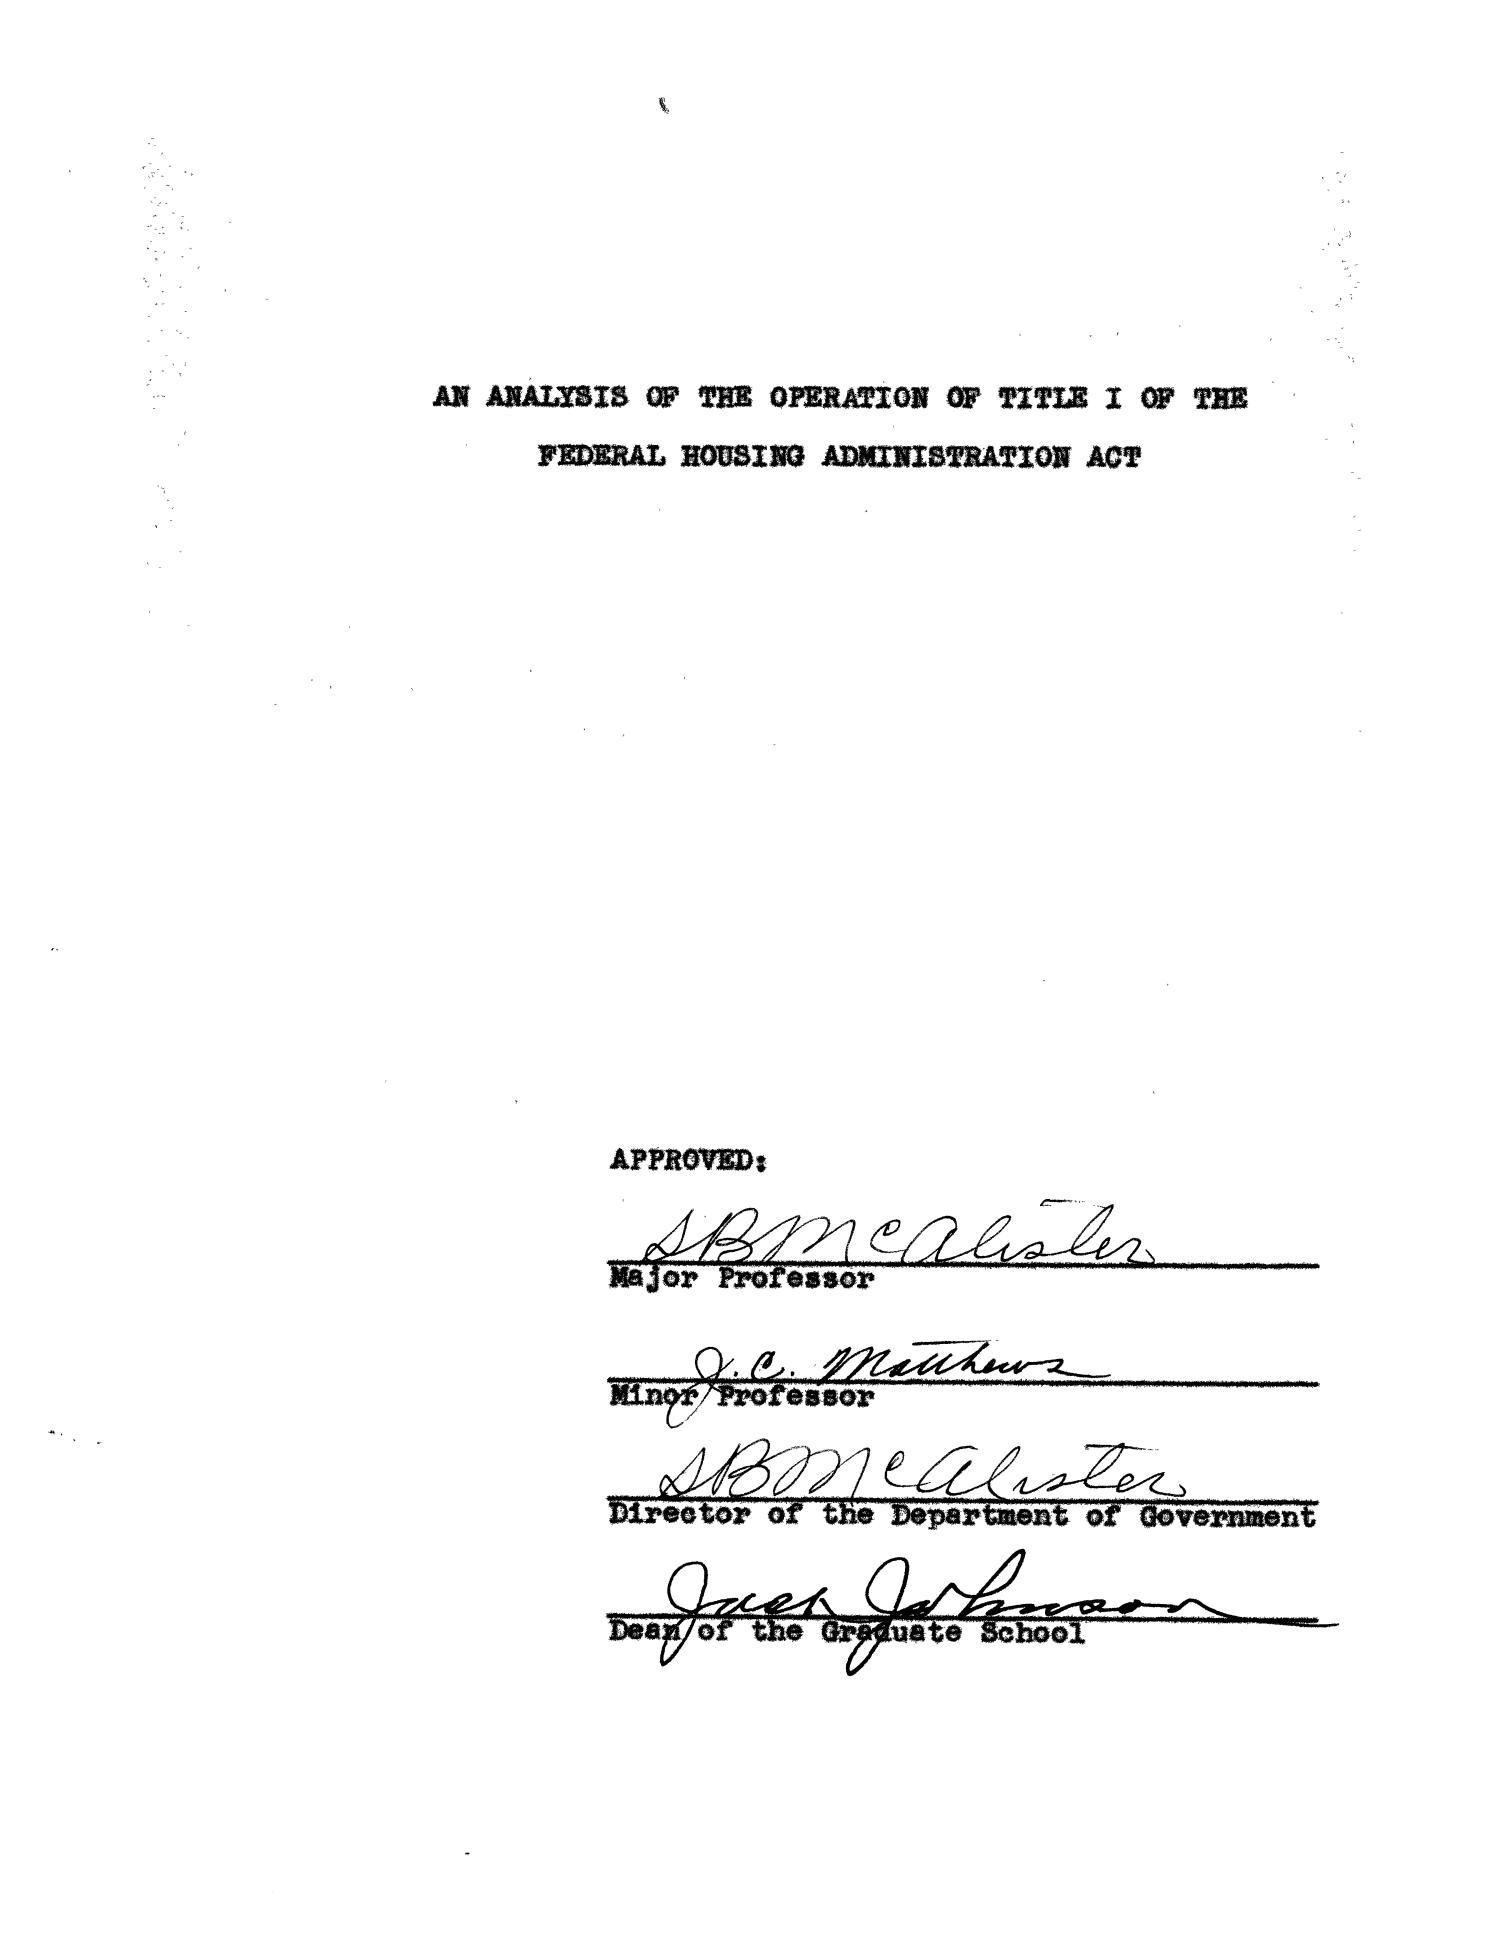 An Analysis of the Operation of Title I of the Federal Housing Administration Act                                                                                                      Title Page